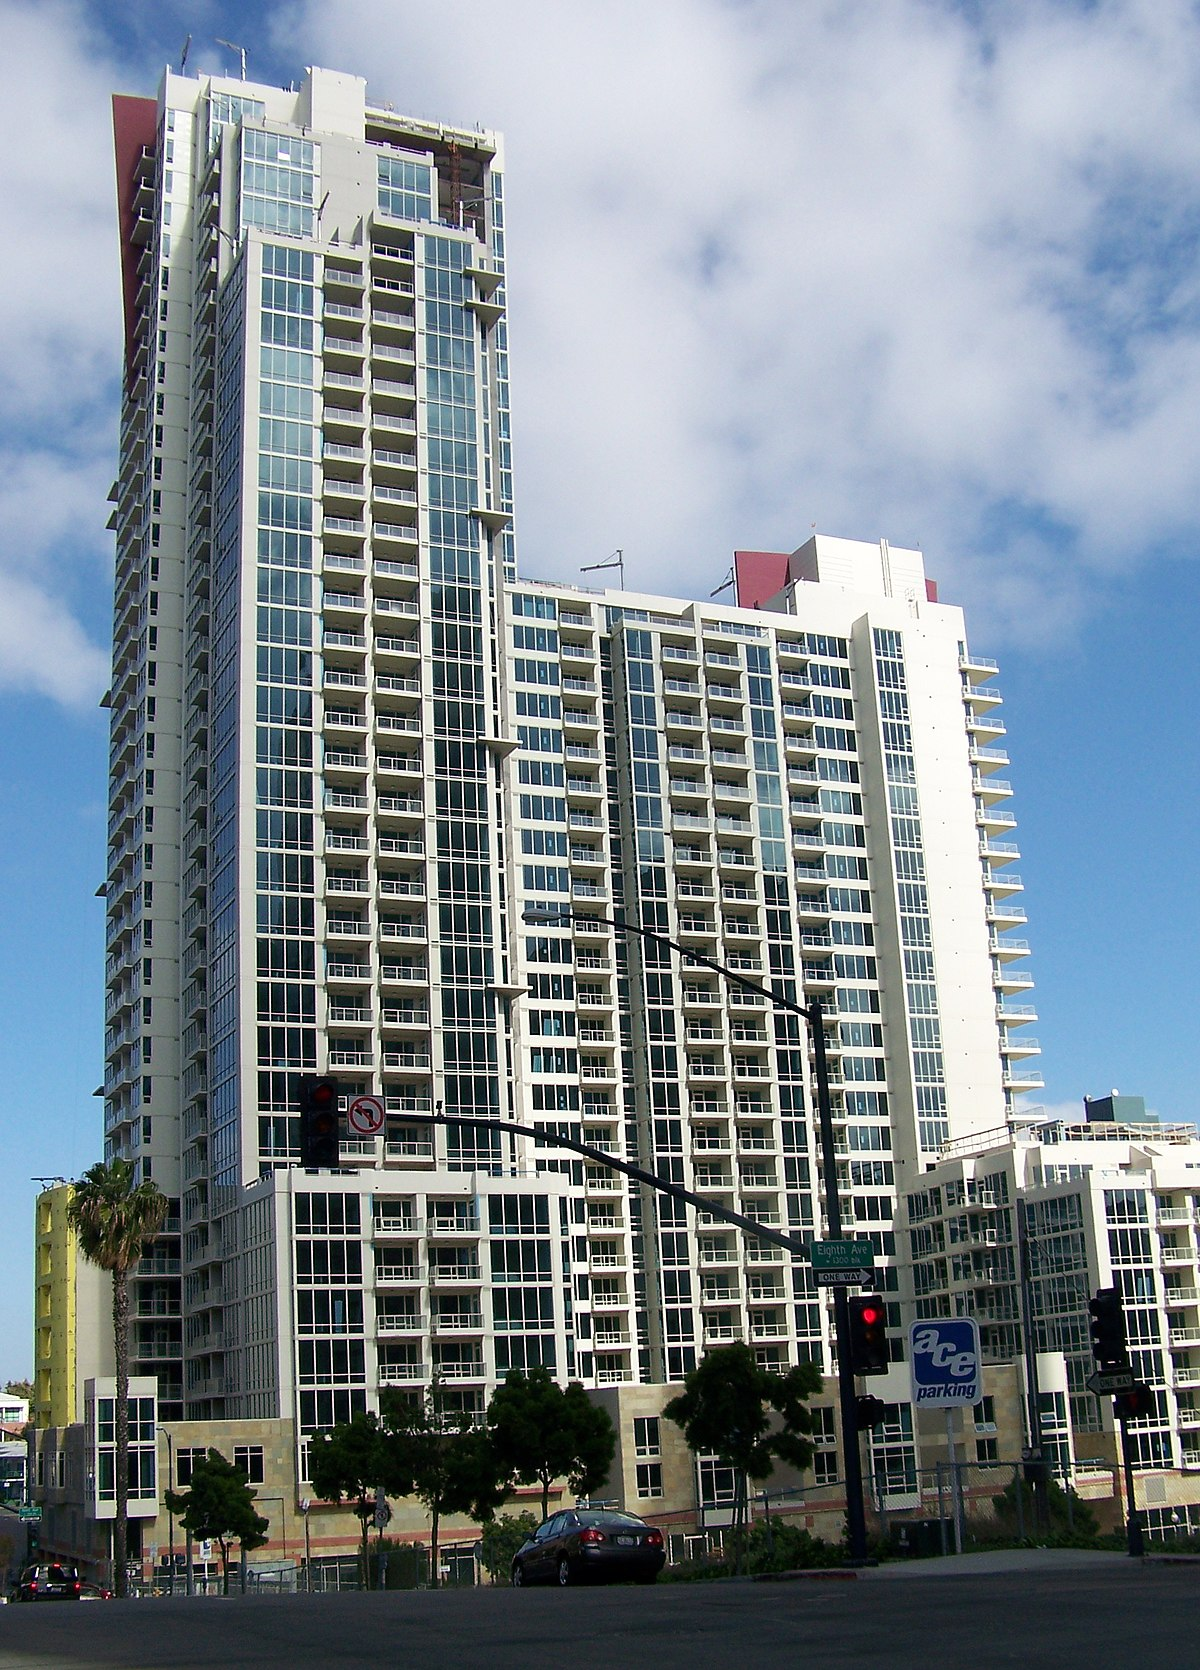 Vantage pointe condominium wikipedia - Apartment buildings san diego ...